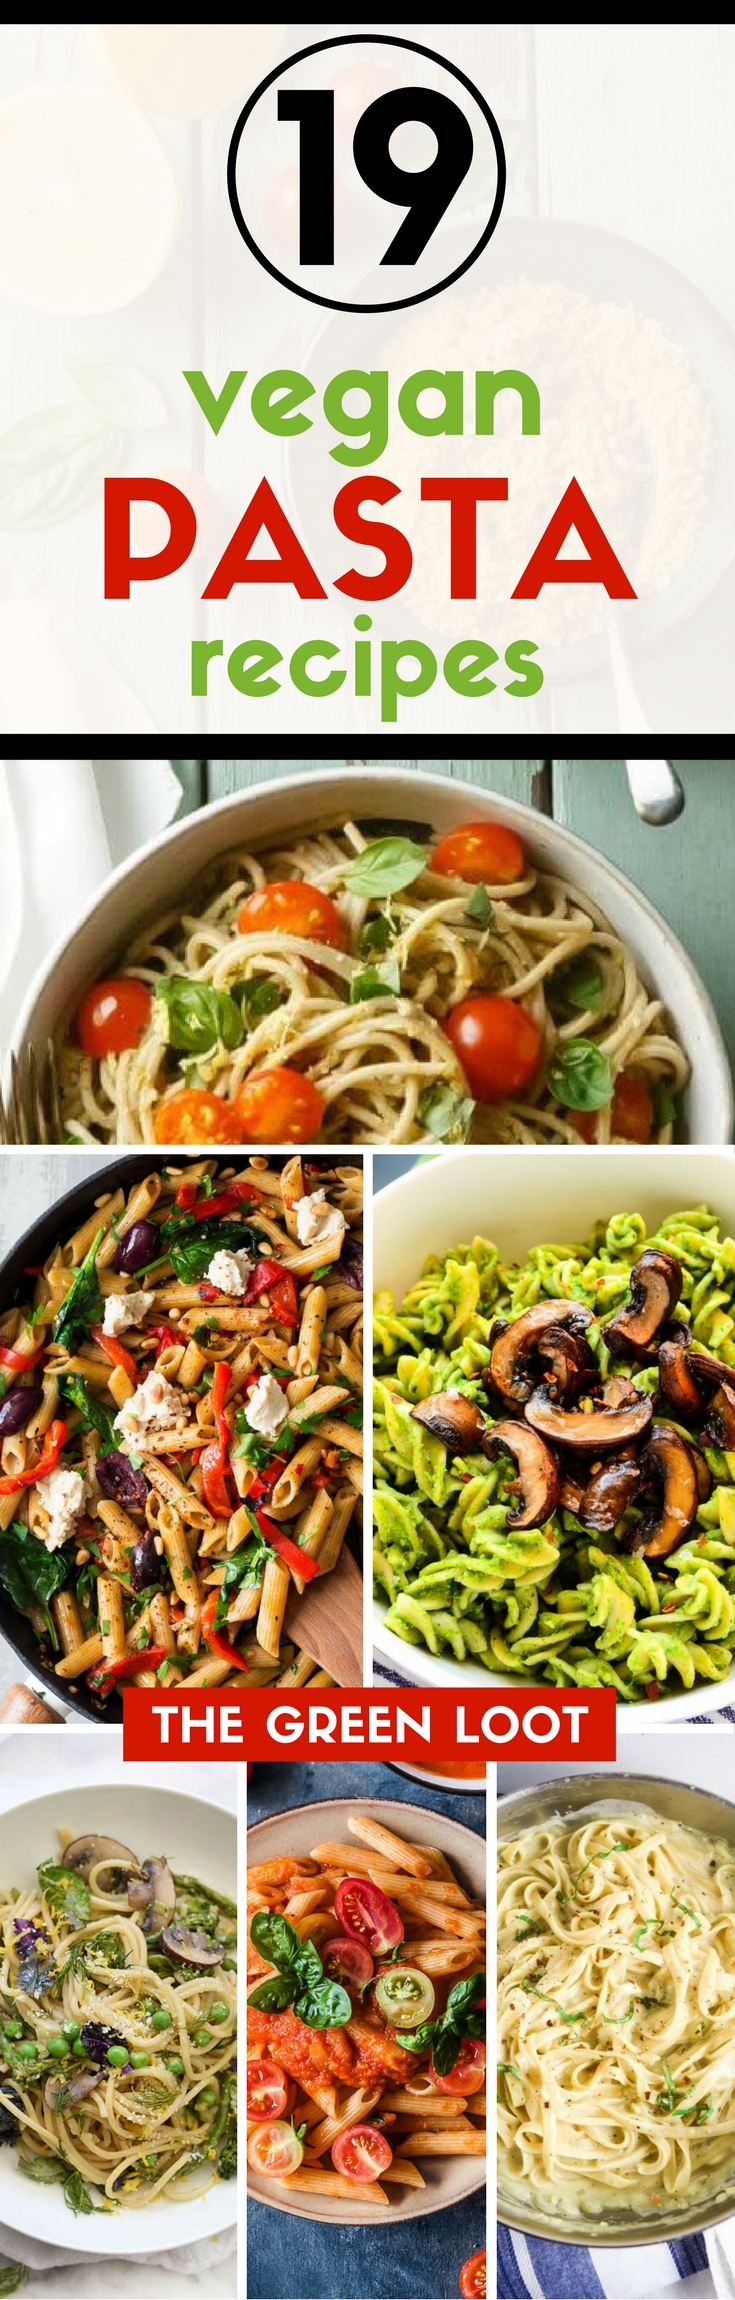 These vegan pasta recipes are full of healthy veggies and are super creamy. From simple one pot to pesto pasta, you'll find your favorite for sure! Enjoy!   The Green Loot #vegan #pasta